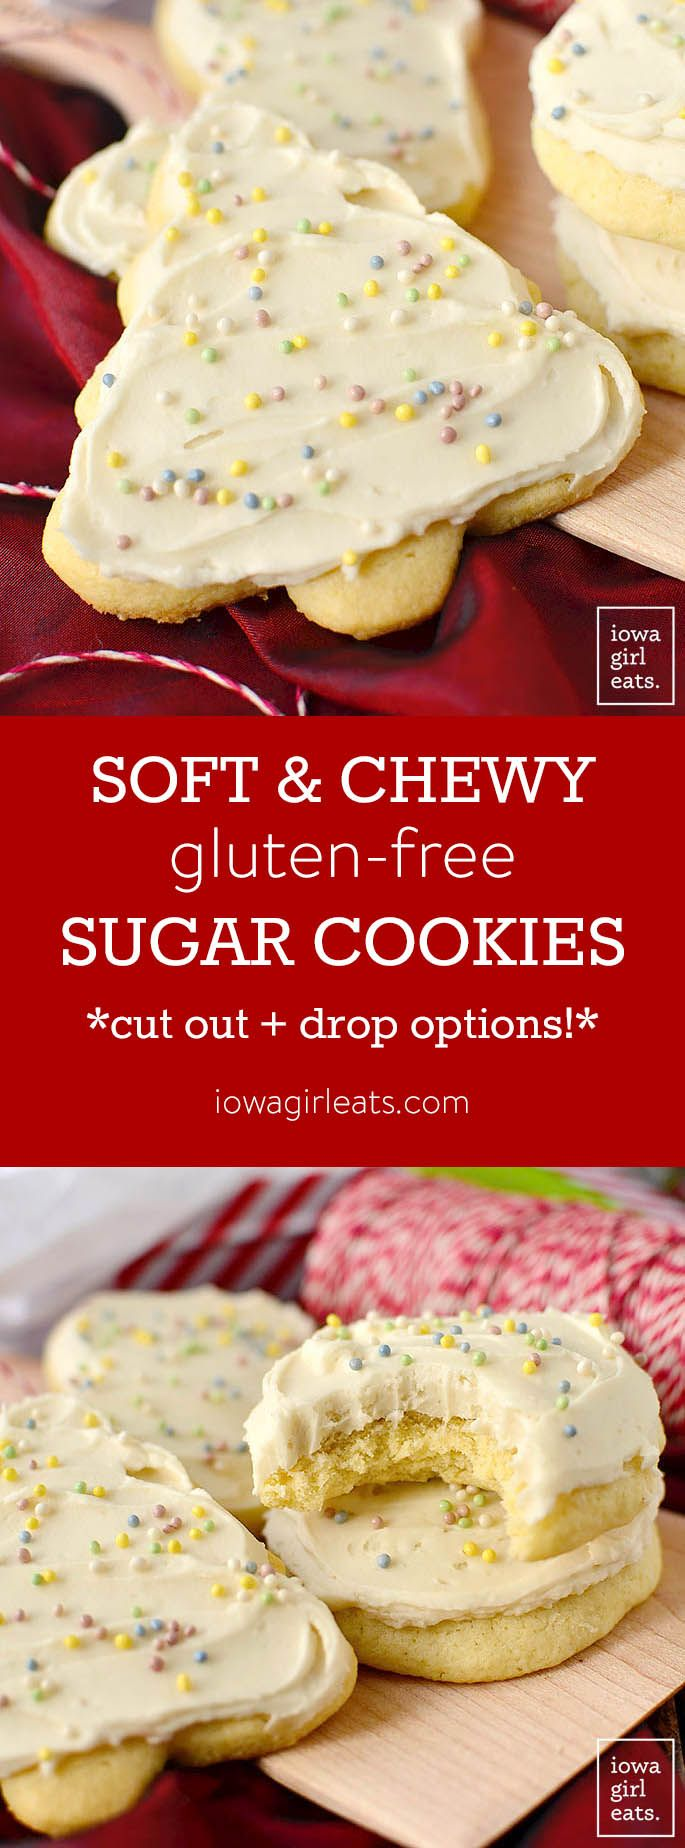 You'd never know soft and chewy gluten-free sugar cookies are made with gluten-free flour! Make into drop cookies or roll and cut into any shape you like.  | iowagirleats.com #glutenfree